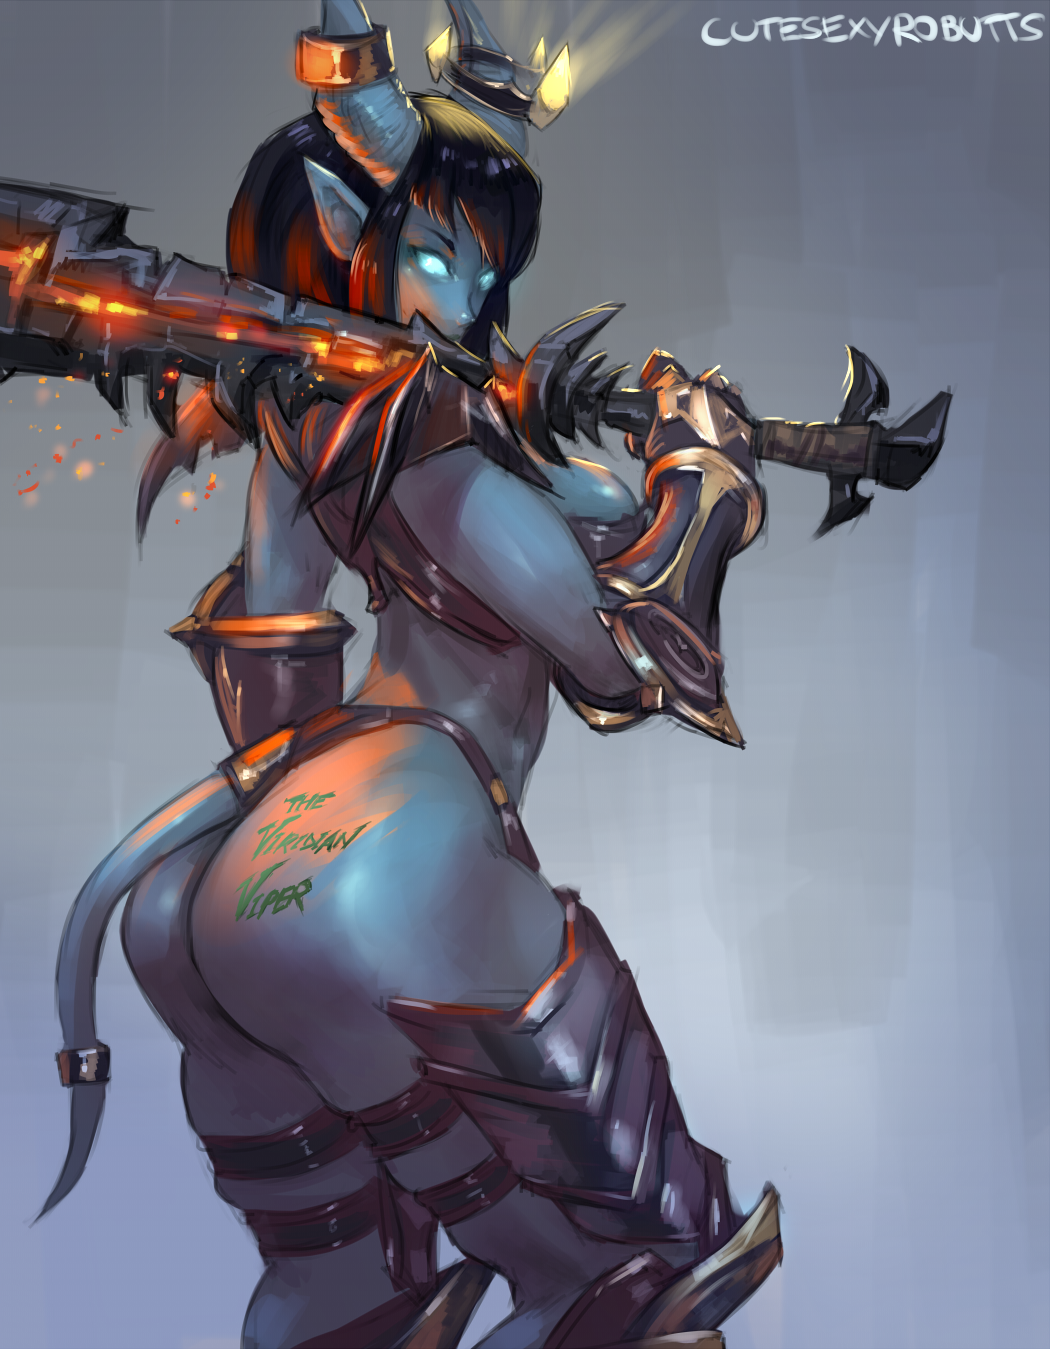 1girl arched_back armor ass bare_shoulders bikini_armor black_hair blue_background blue_eyes blue_skin body_writing breasts commission cutesexyrobutts draenei embers energy gauntlets glowing glowing_eyes highres horns long_hair looking_at_viewer looking_over_shoulder medium_breasts monster monster_girl pointy_ears revealing_clothes signature solo sword tail tattoo text thick_thighs thighs thong tramp_stamp warcraft weapon world_of_warcraft